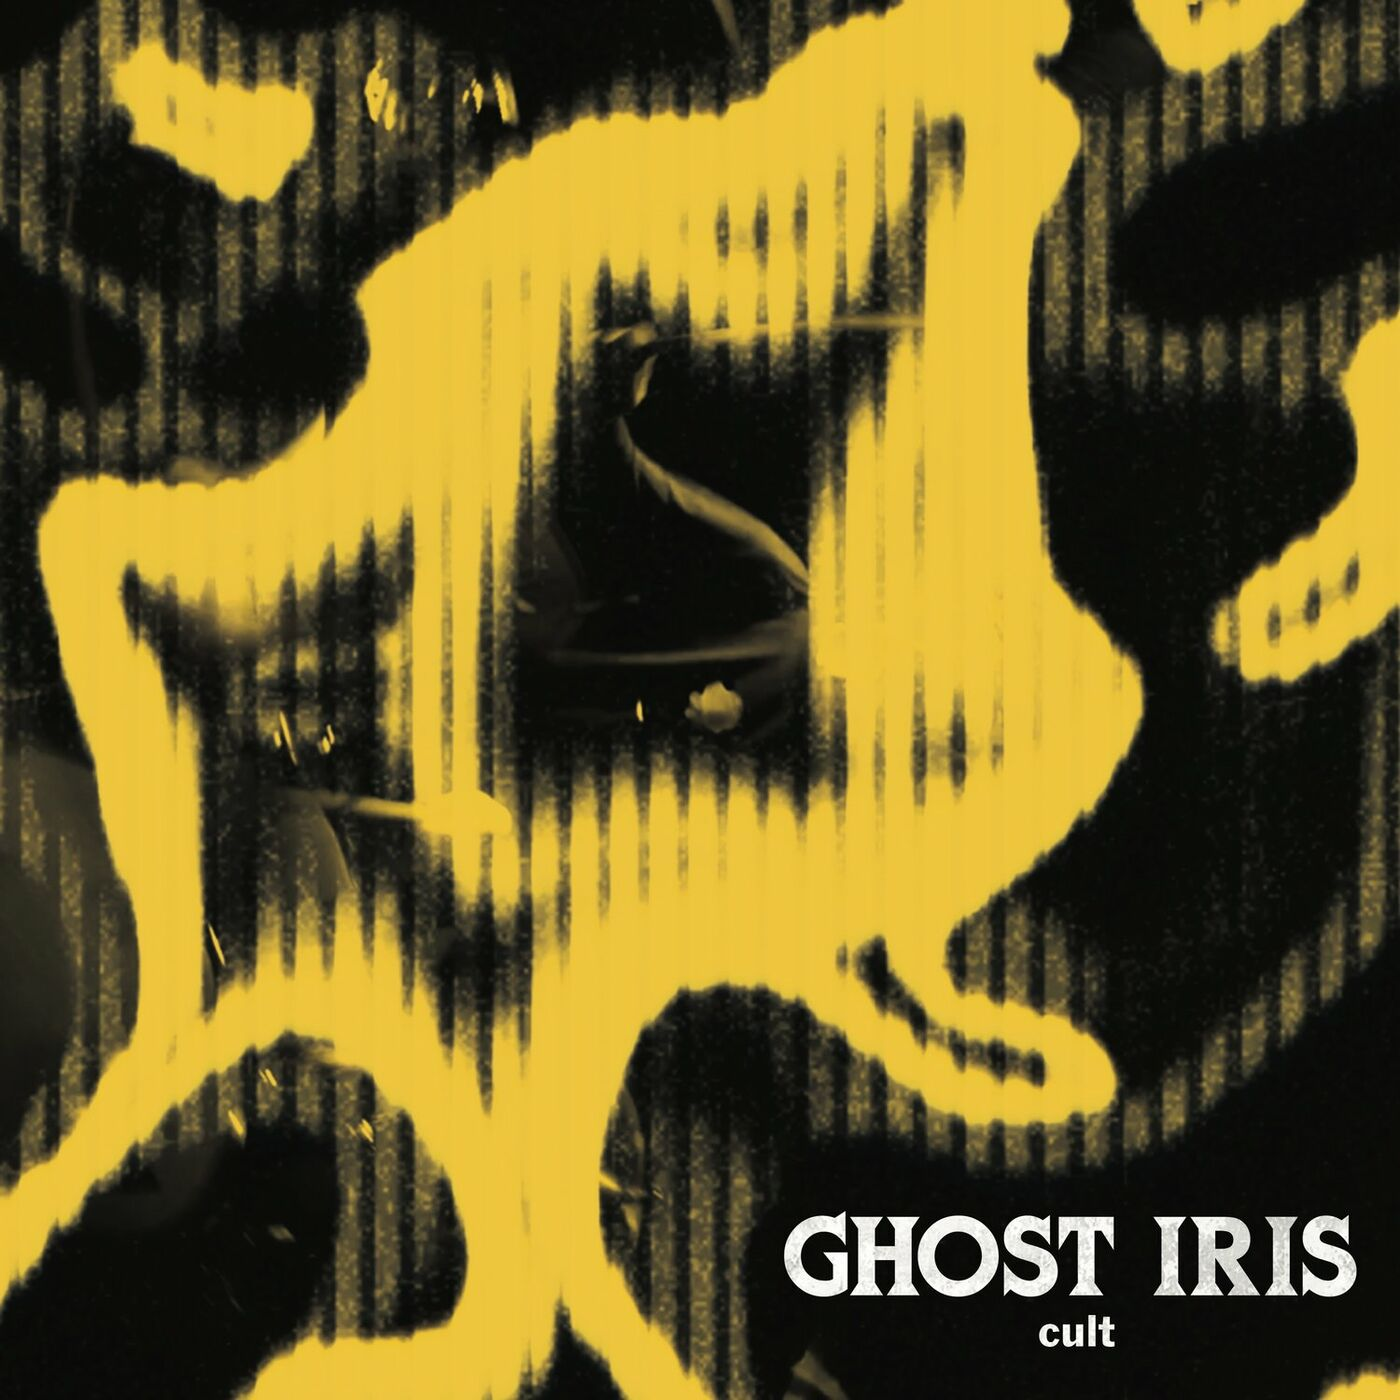 Ghost Iris - Cult [single] (2021)